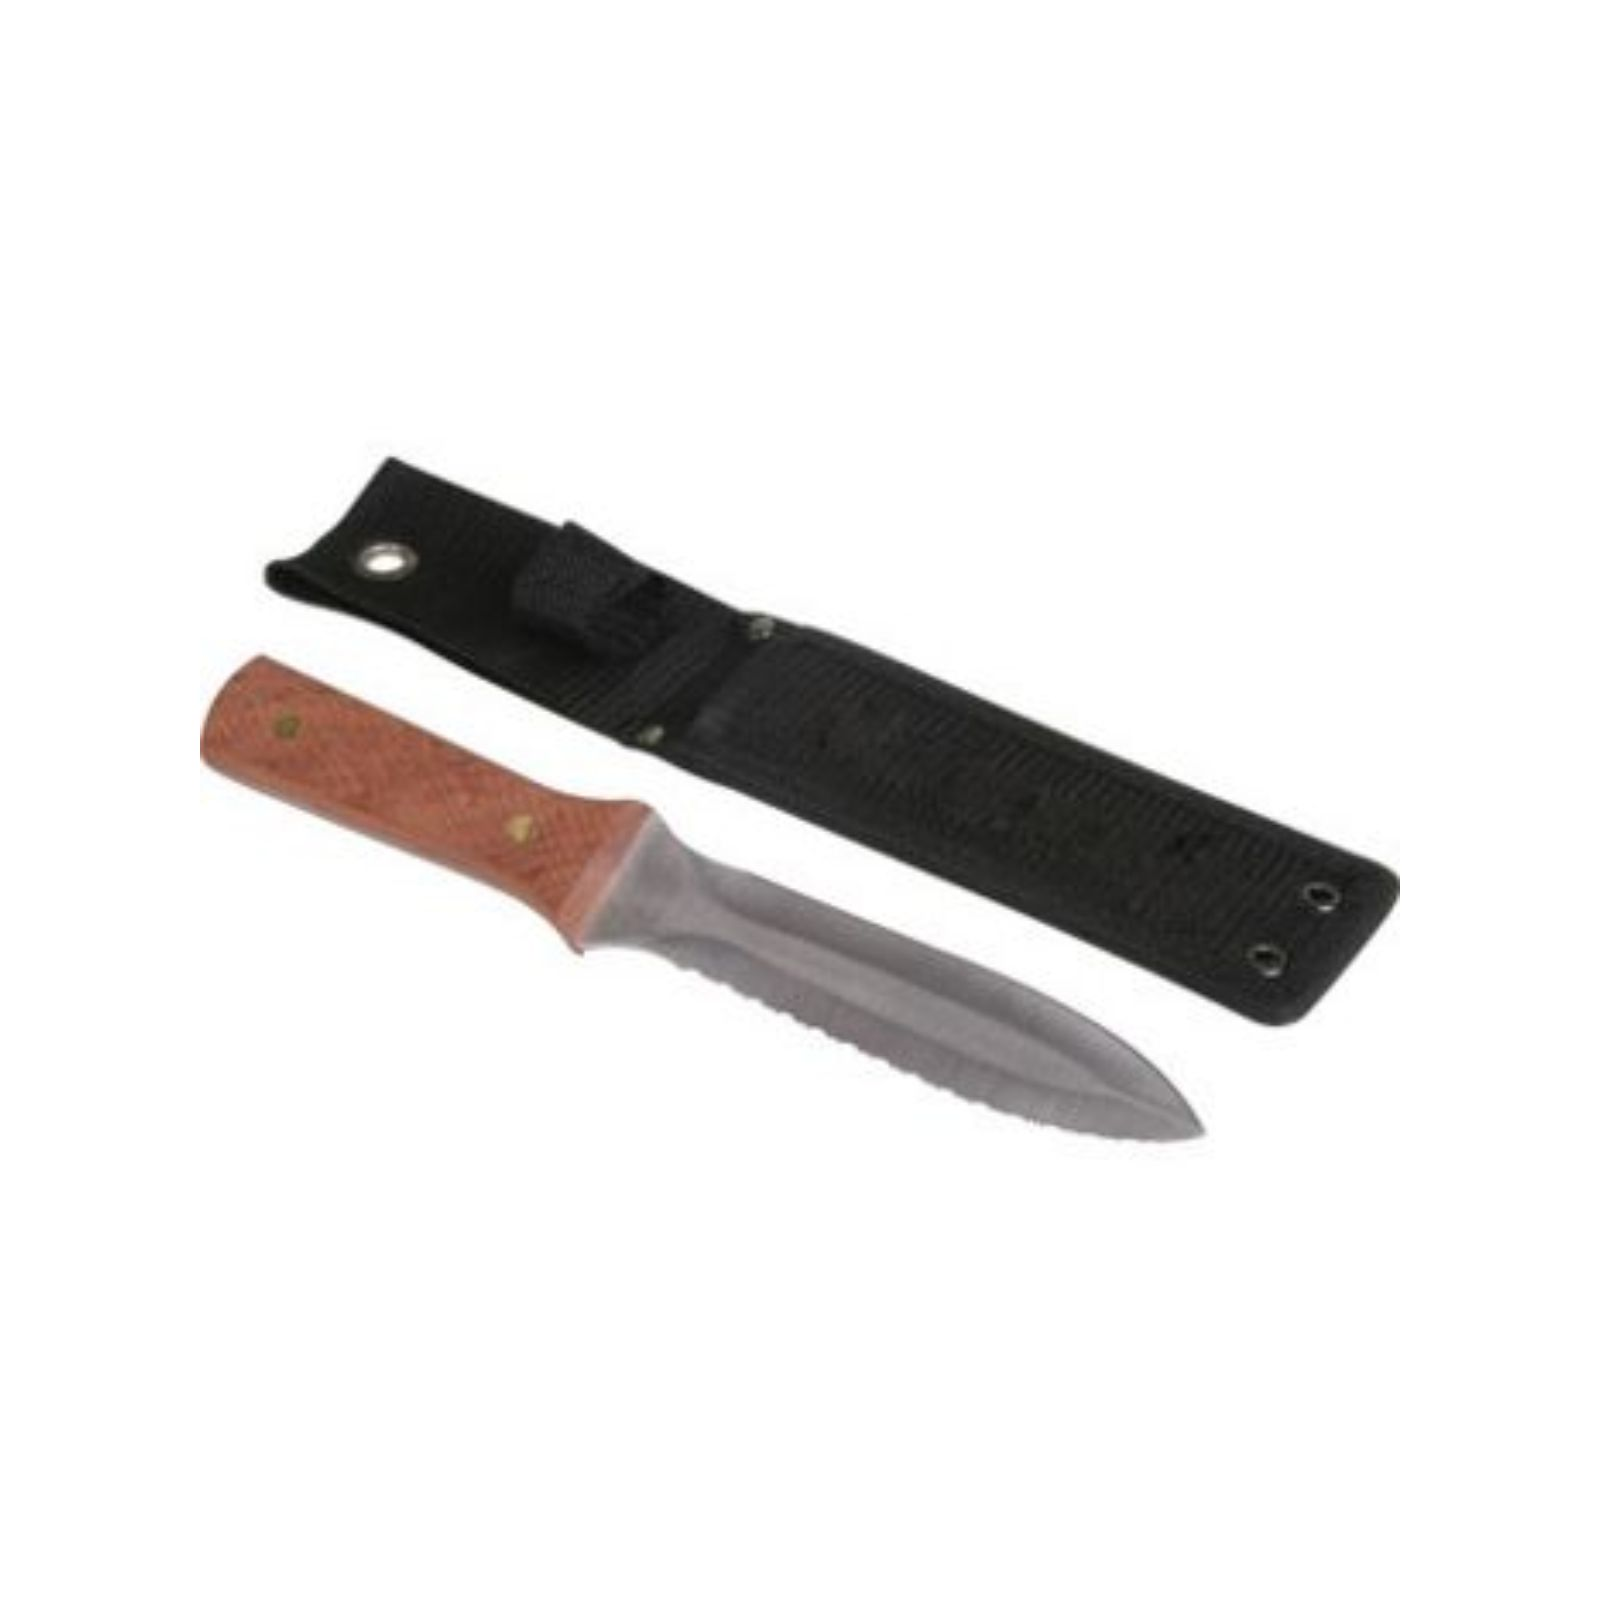 BMP BMKNF1 -  BM - Duct Knife - Stainless Steel Blade, Hardwood Handle, Serrated Blade